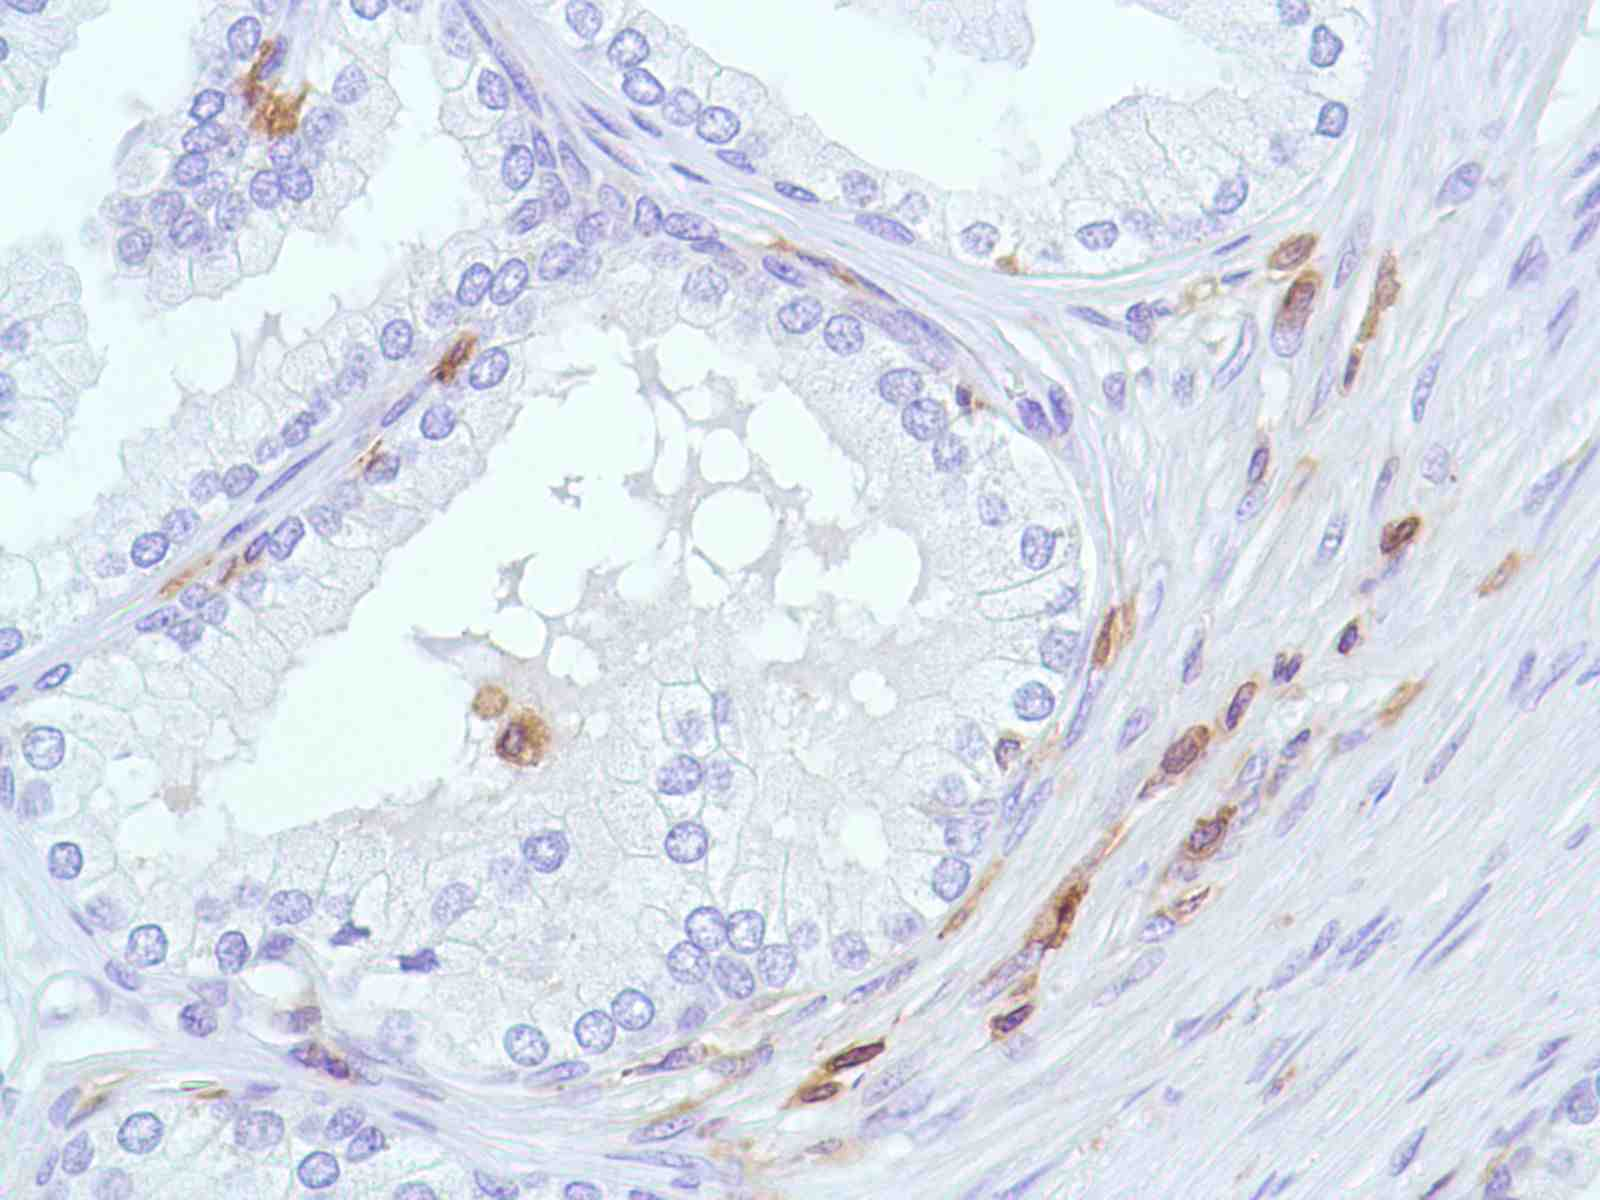 Human Prostate stained with anti-CD43 antibody